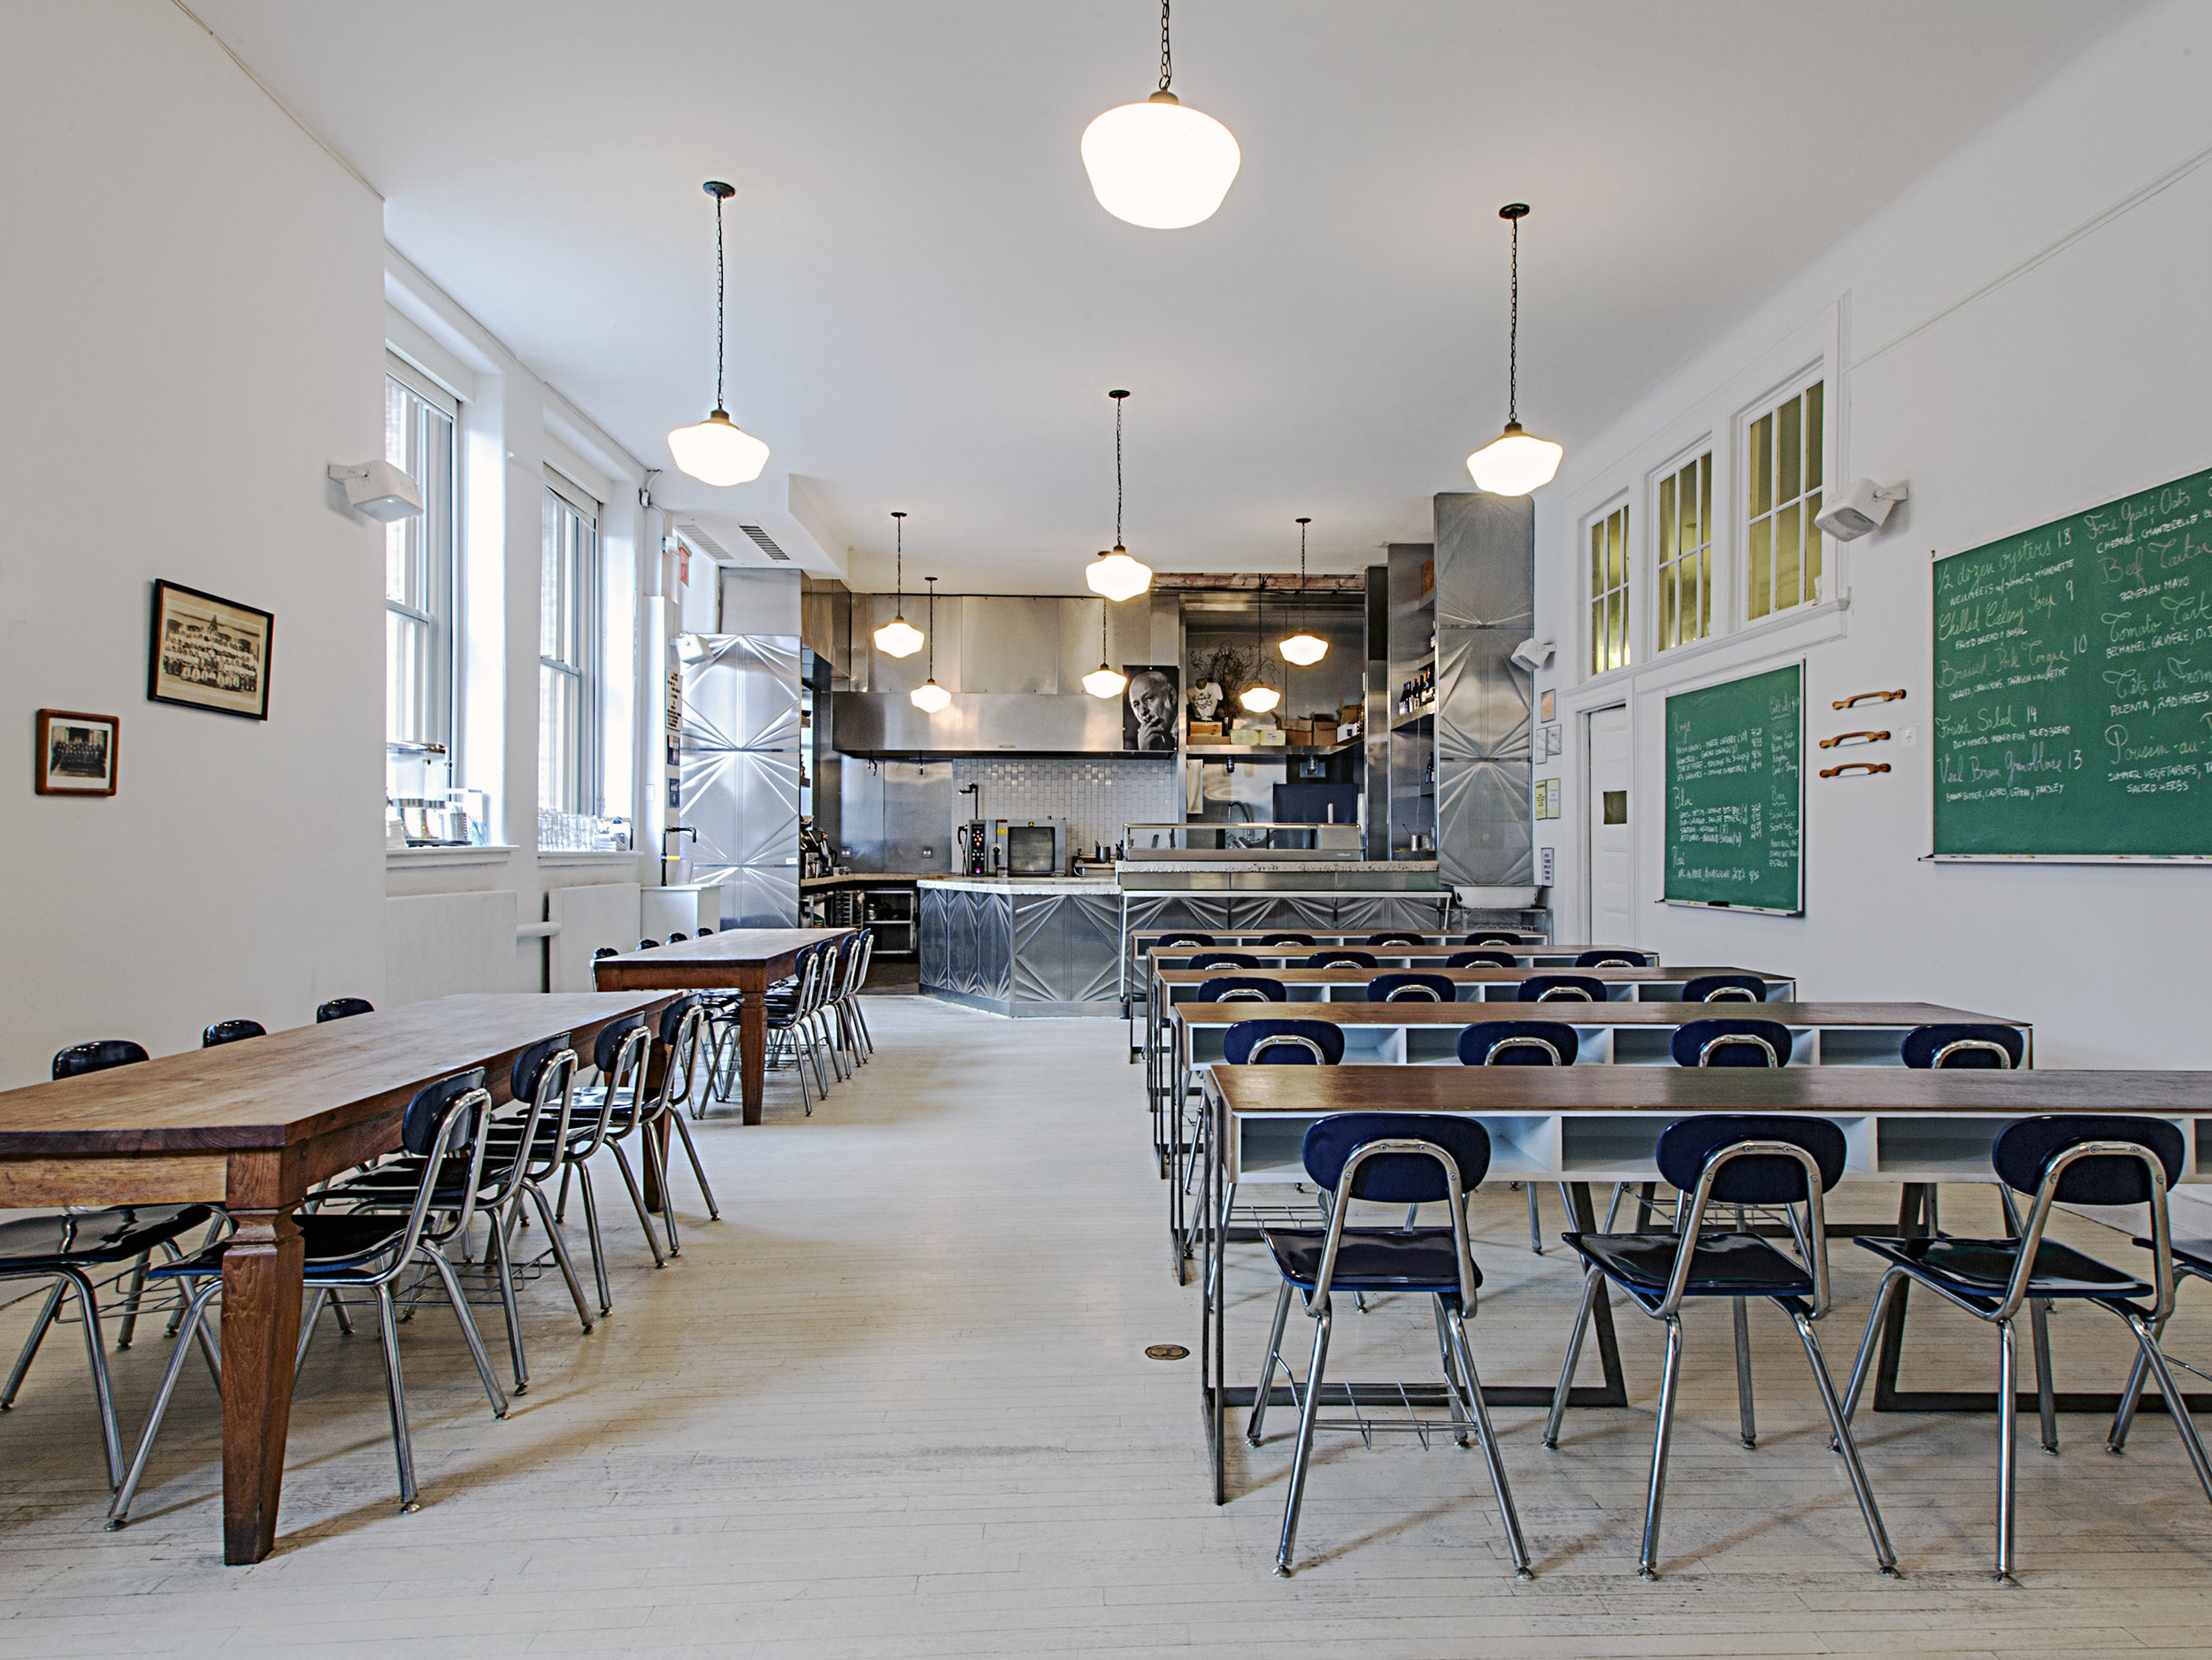 MoMA PS1 - M Wells Dinette, New York